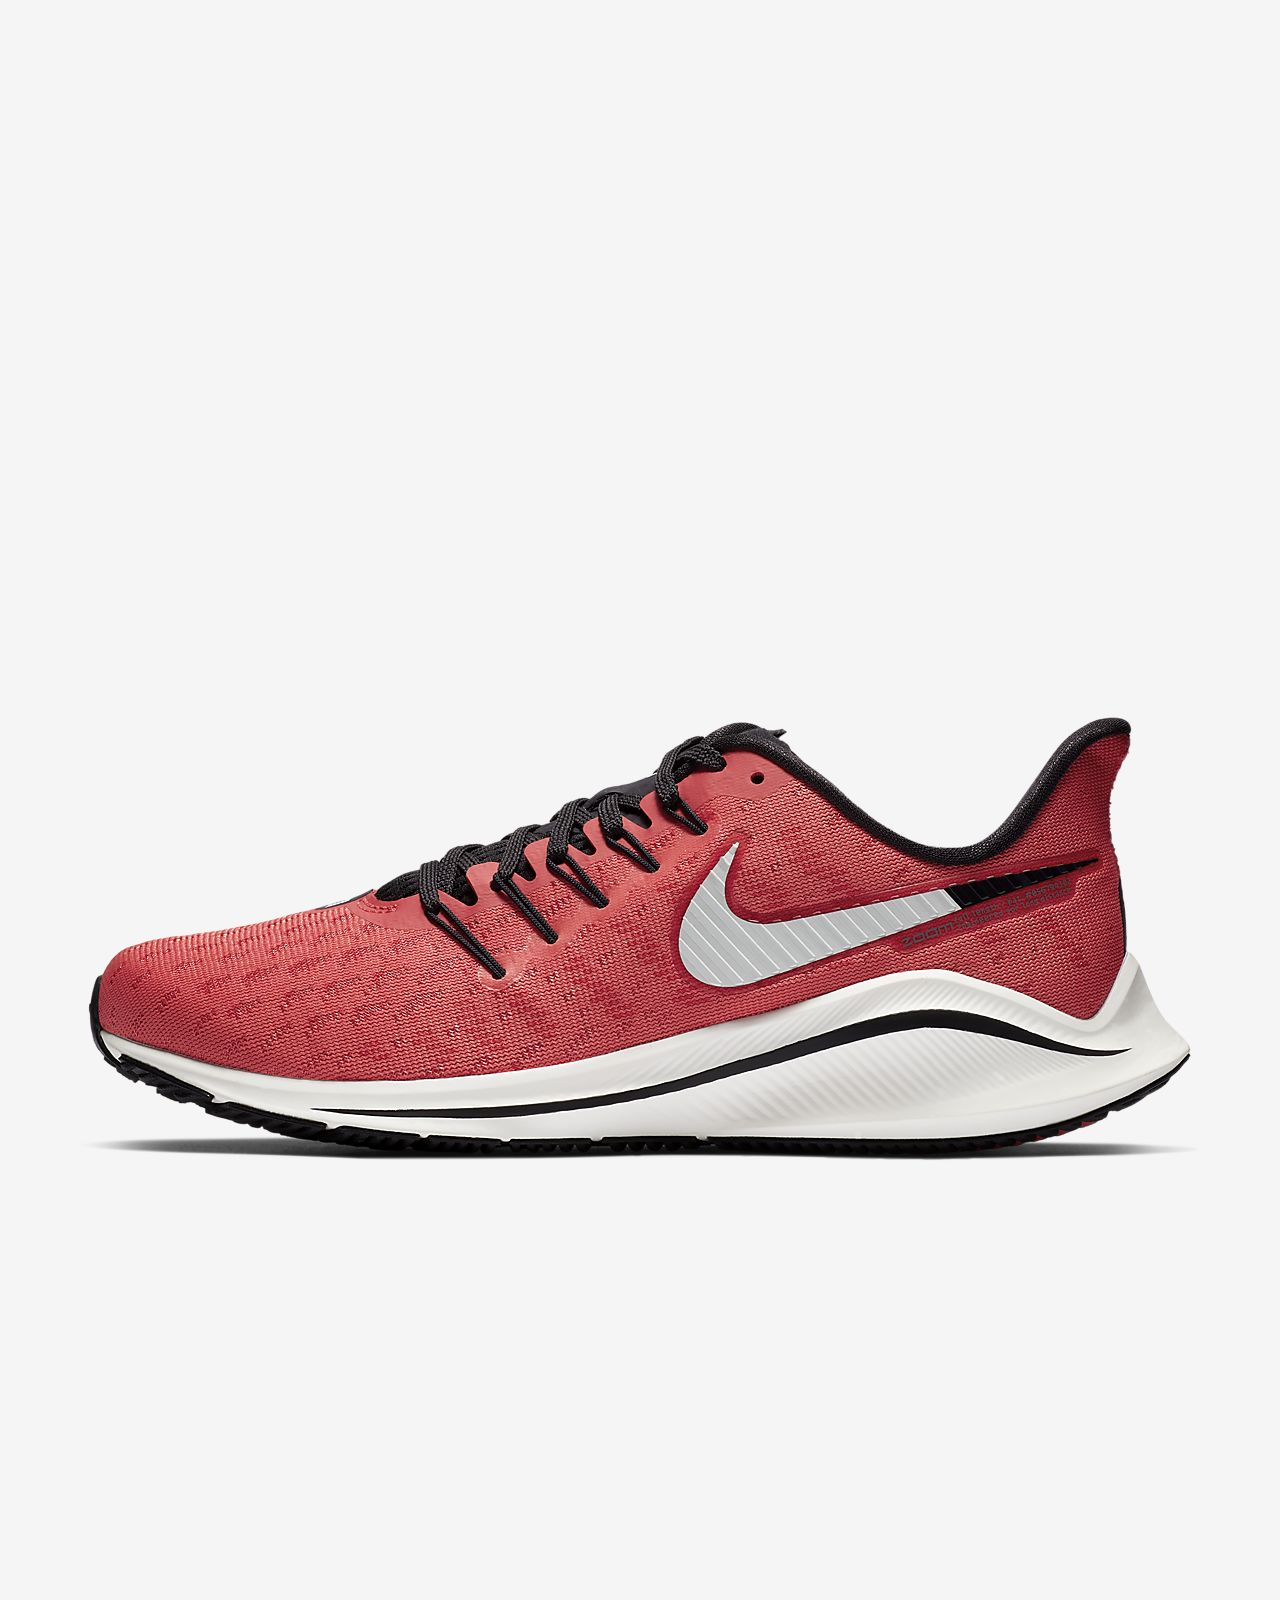 e488c328c425 Nike Air Zoom Vomero 14 Women s Running Shoe. Nike.com GB